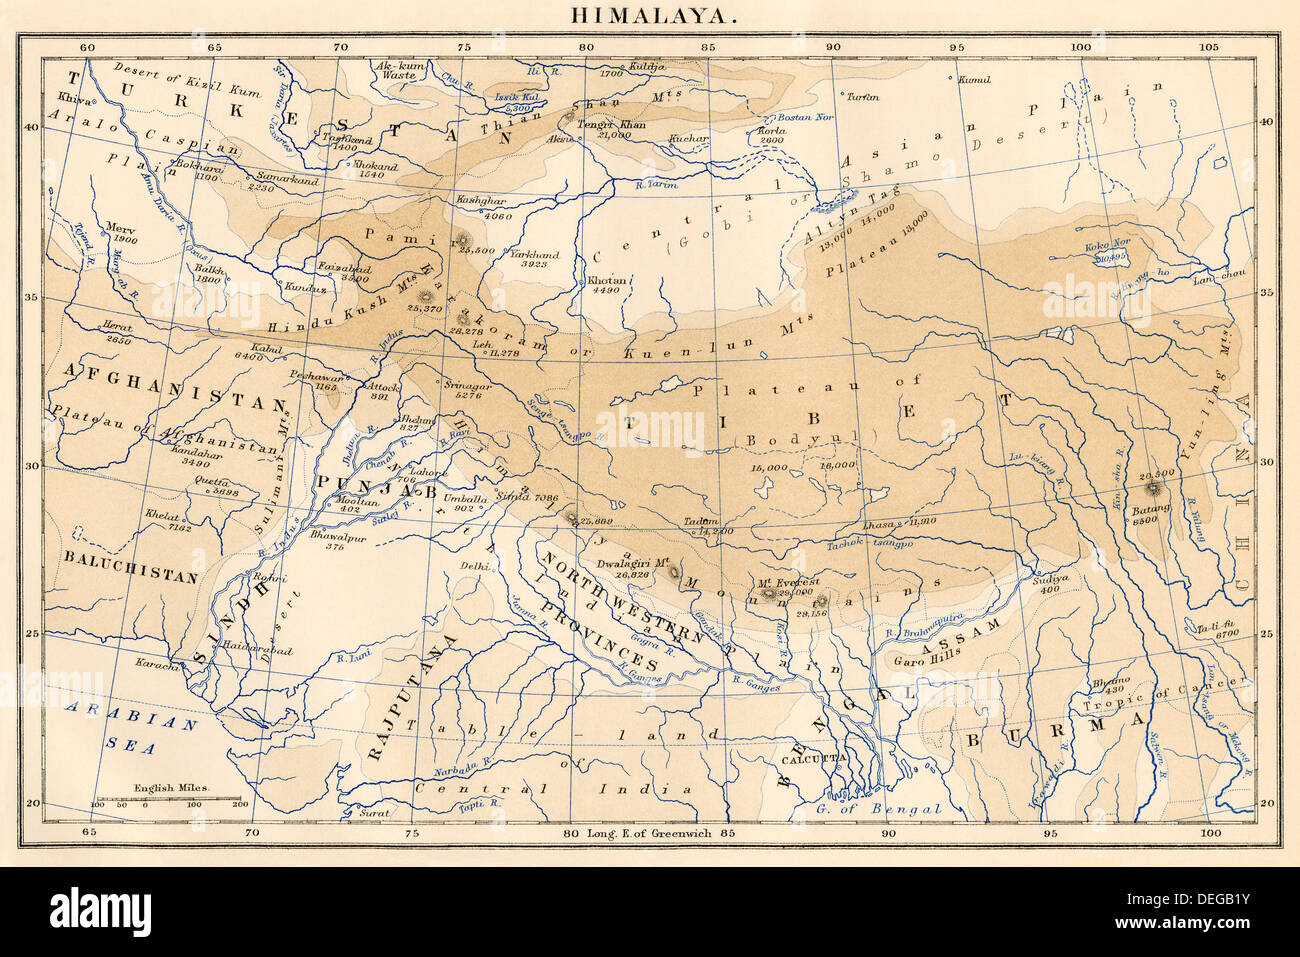 Map of Himalaya region of Asia, 1870s. Color lithograph - Stock Image